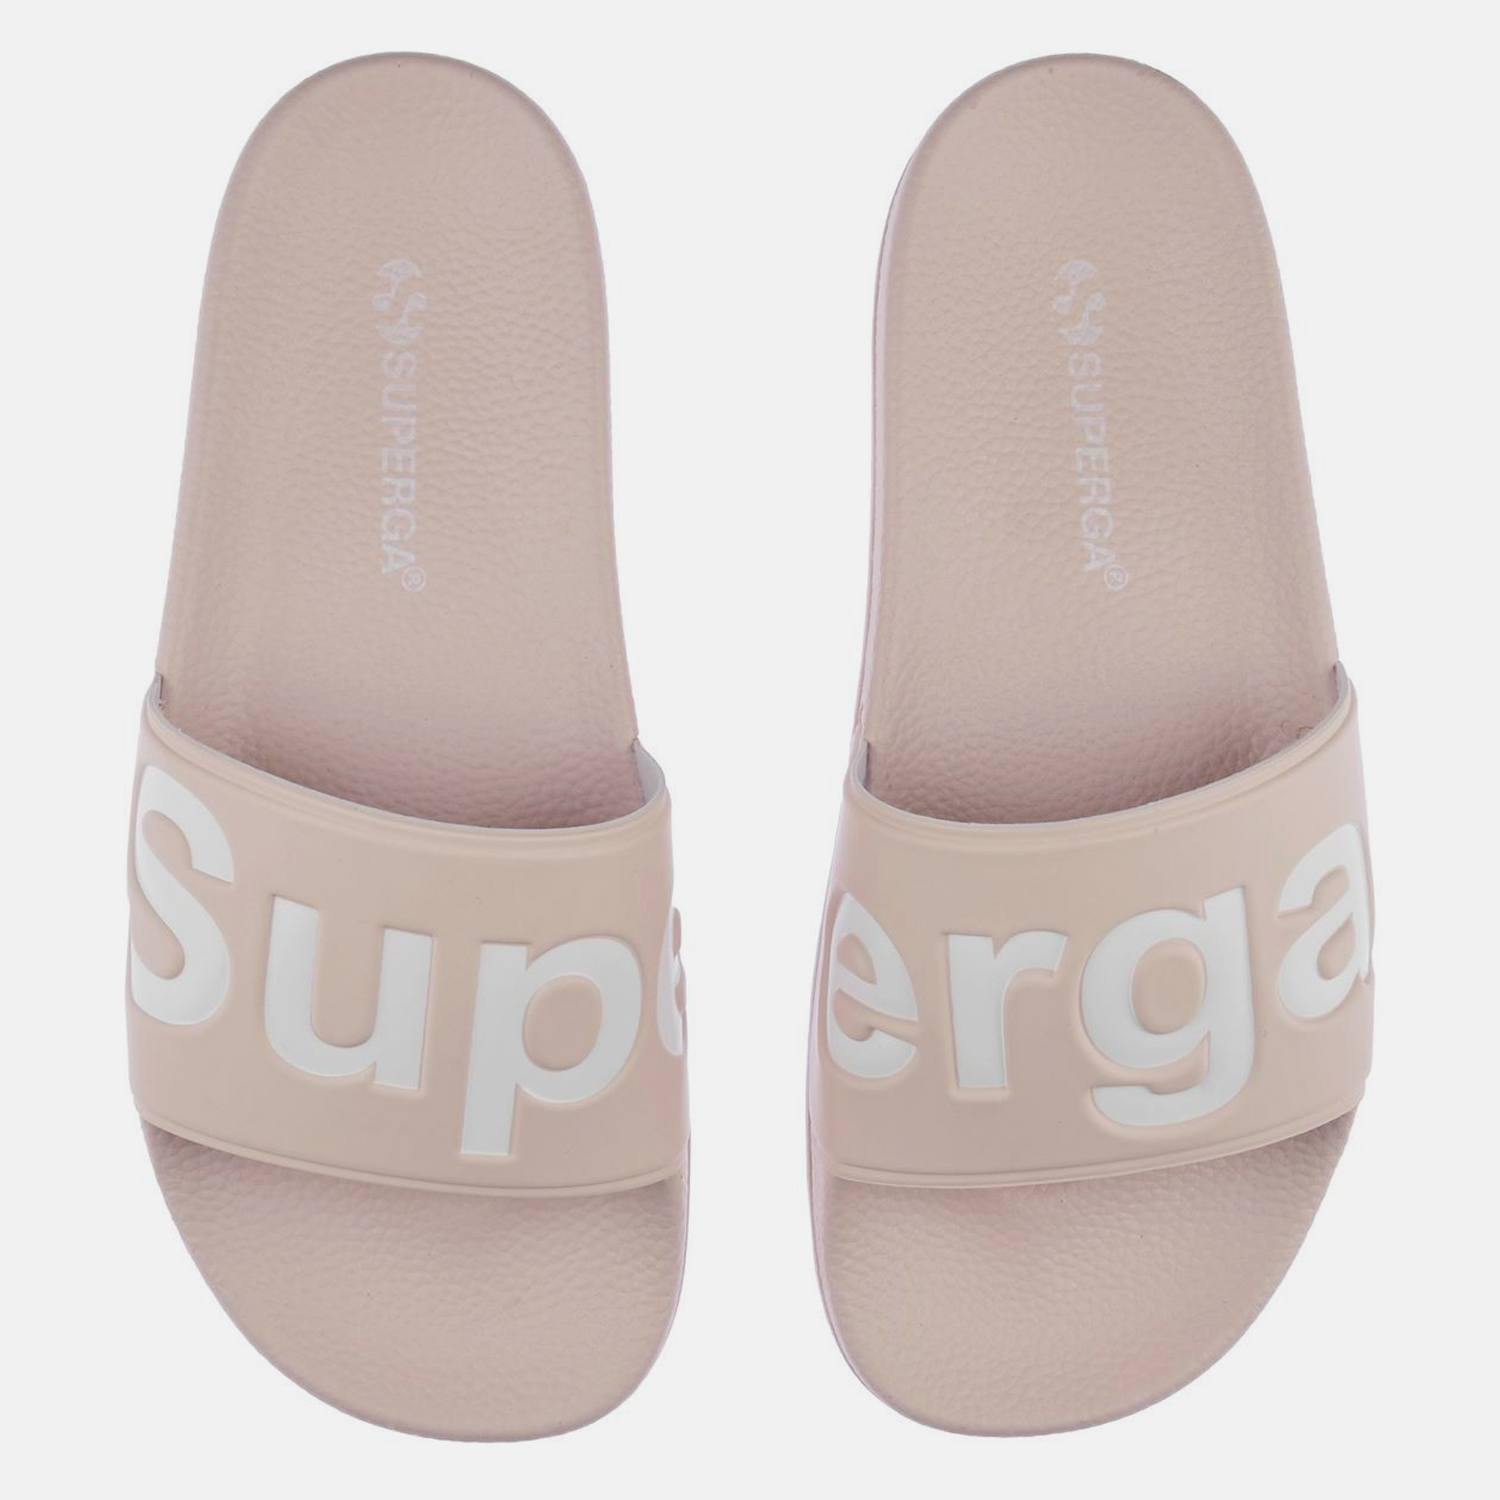 Superga 1908-PUU Slippers (9000027045_38270)